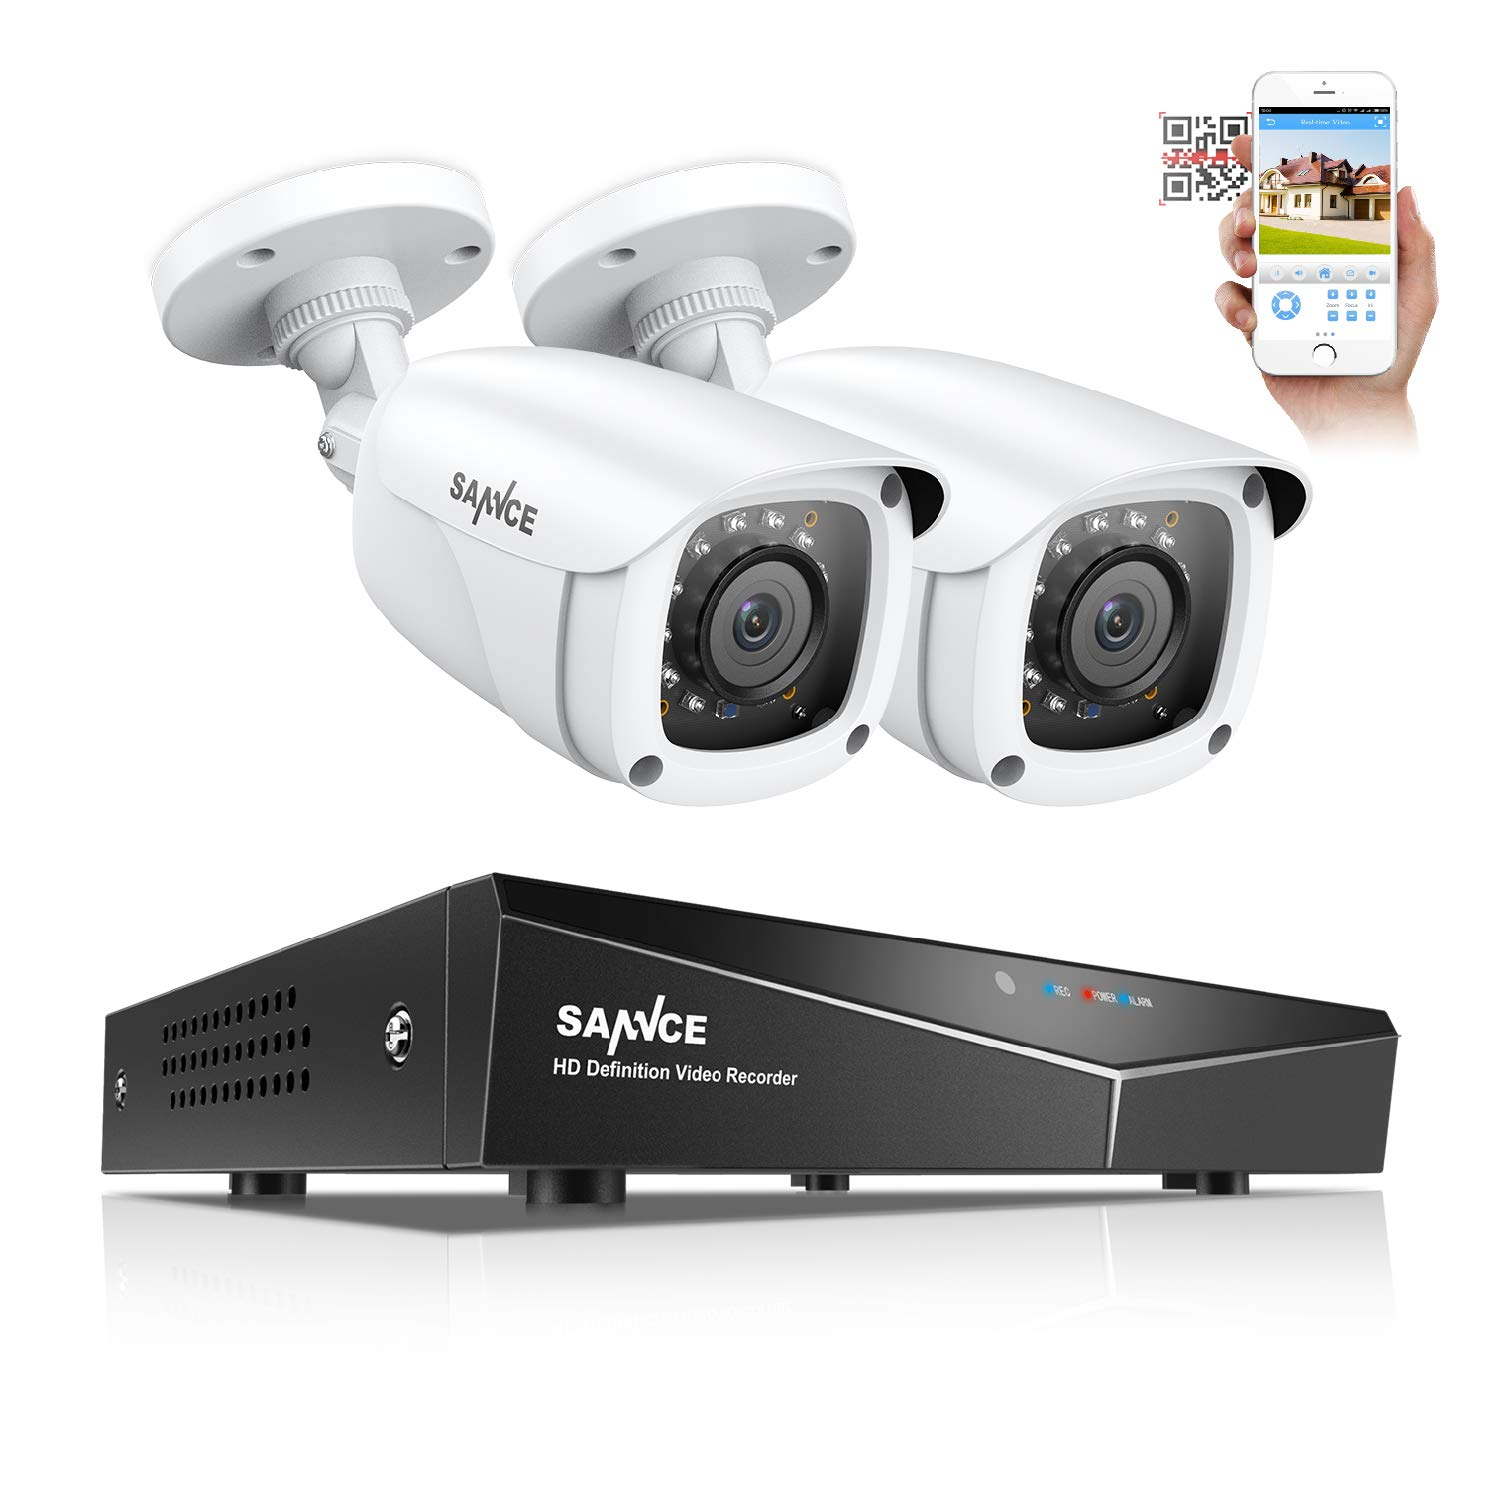 SANNCE Security Camera Systems 4CH 1080N DVR and (2) 1080P Weatherproof CCTV Bullet Cameras, Indoor/Outdoor Weatherproof Cameras with IR Night Vision LEDs- NO HDD by SANNCE